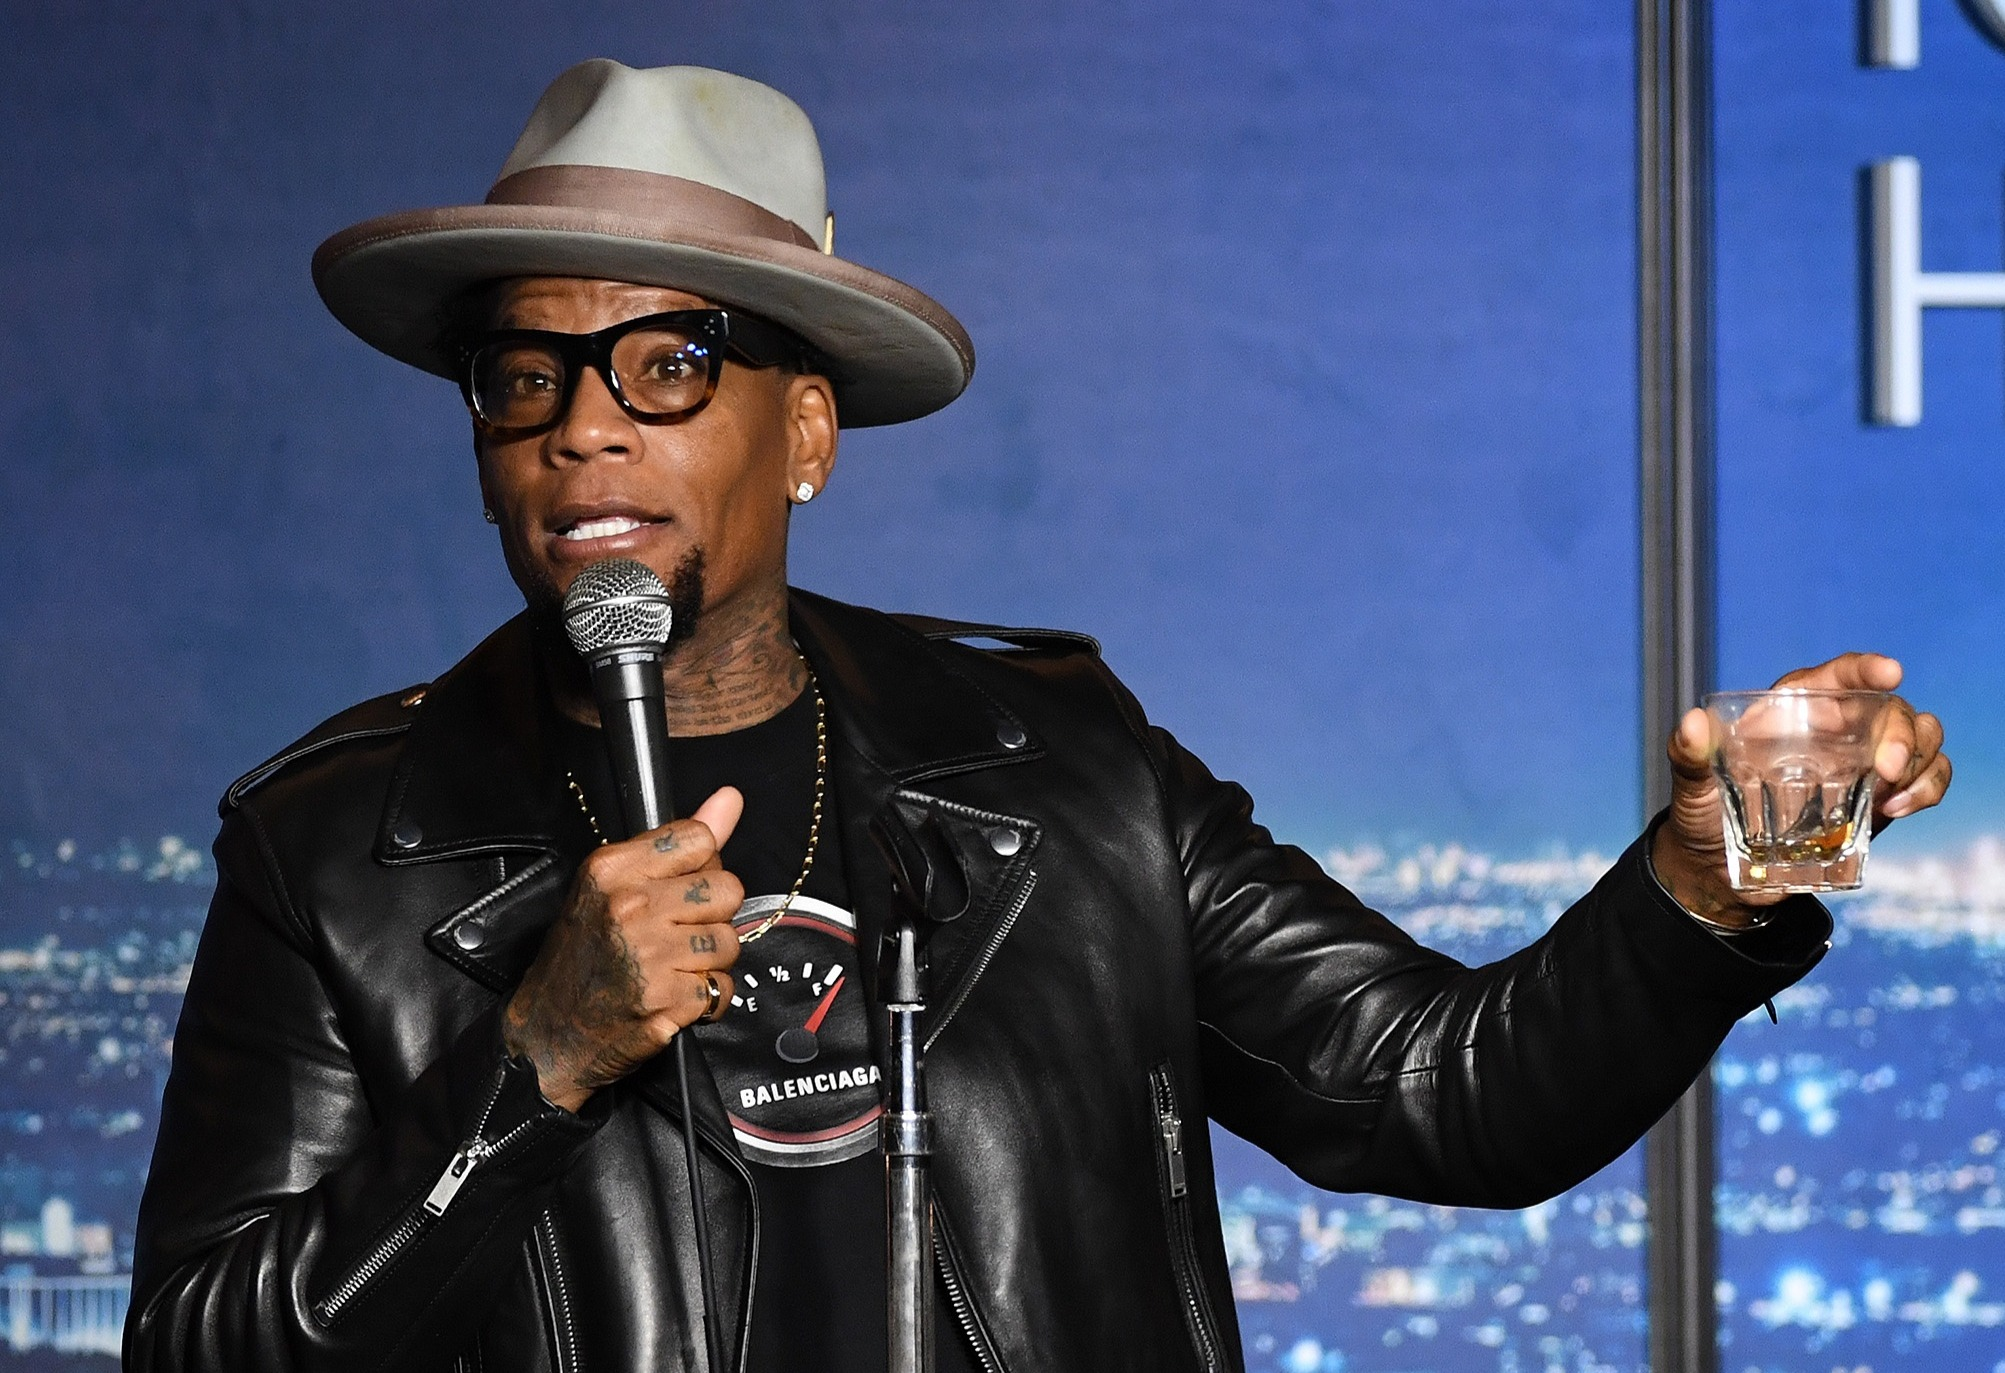 D.L. Hughley collapses onstage in Nashville @